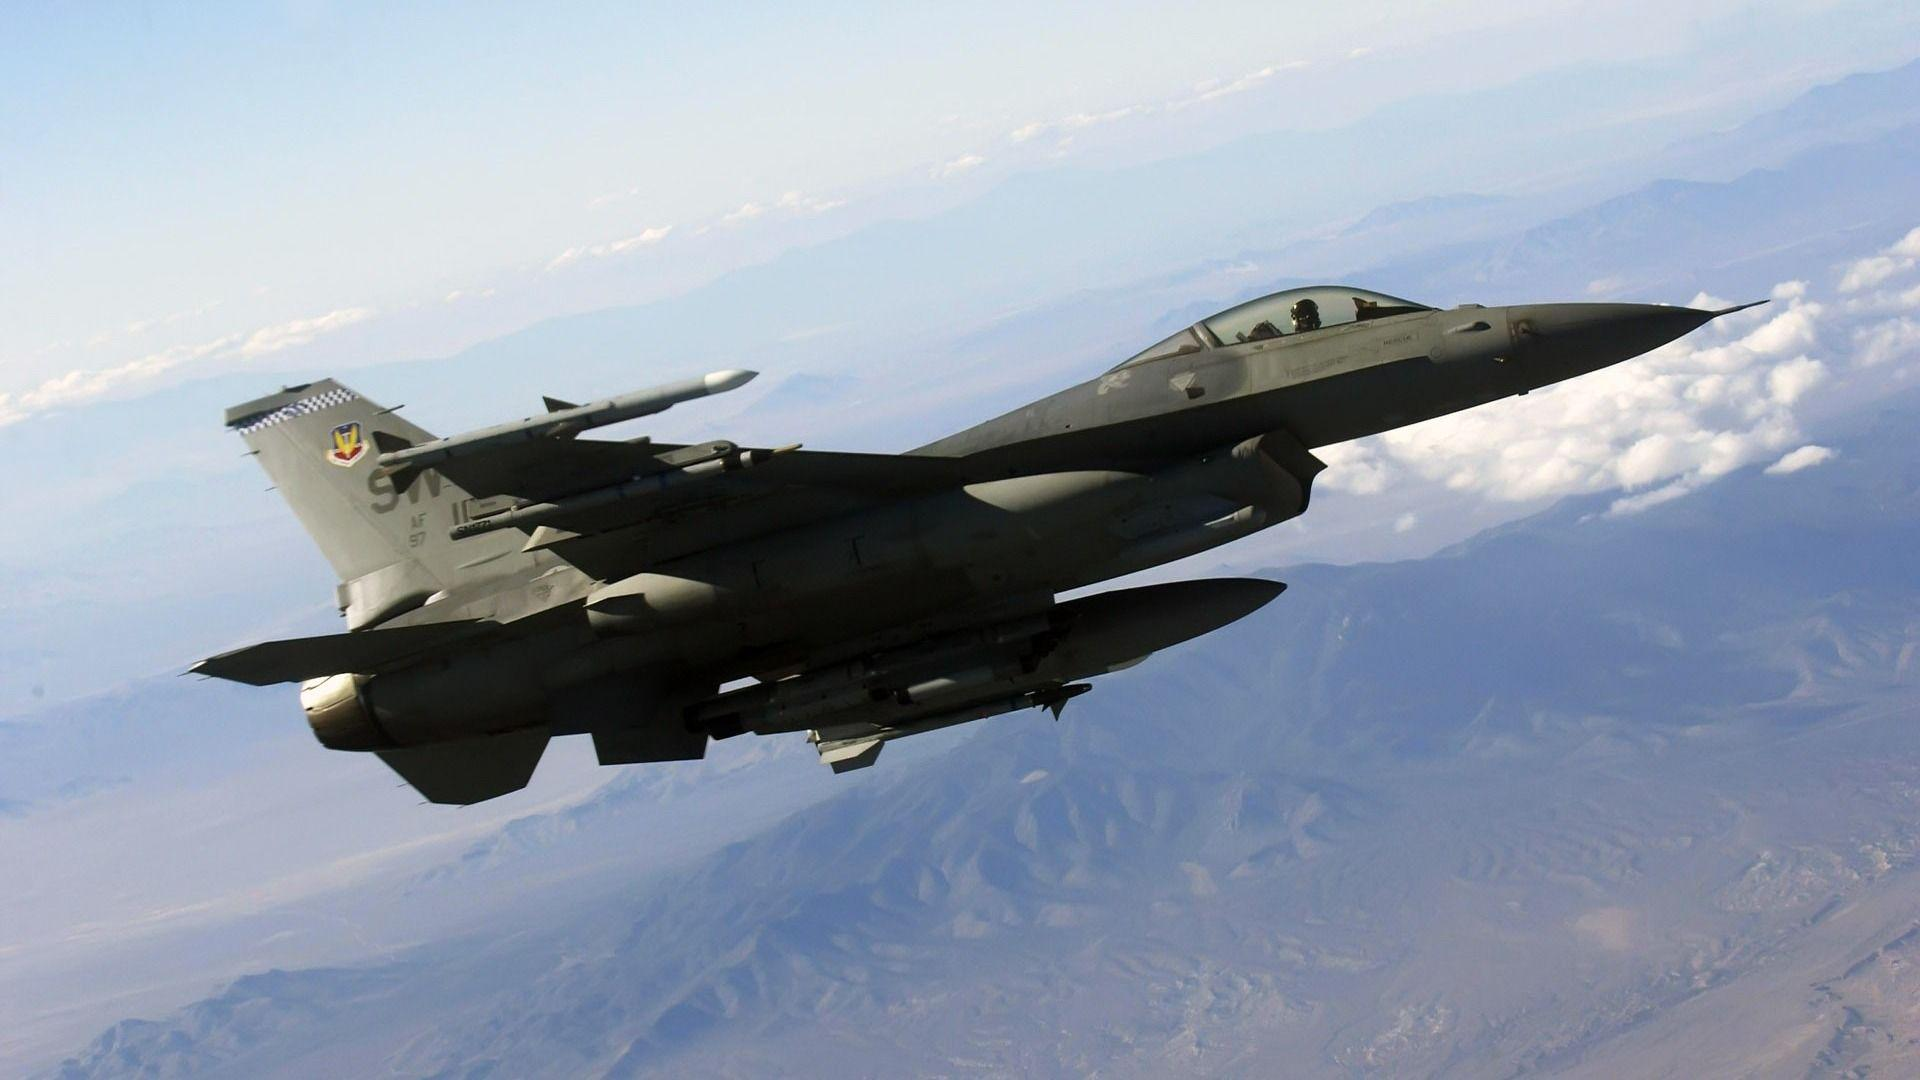 Pics For > Military Aircraft Wallpapers